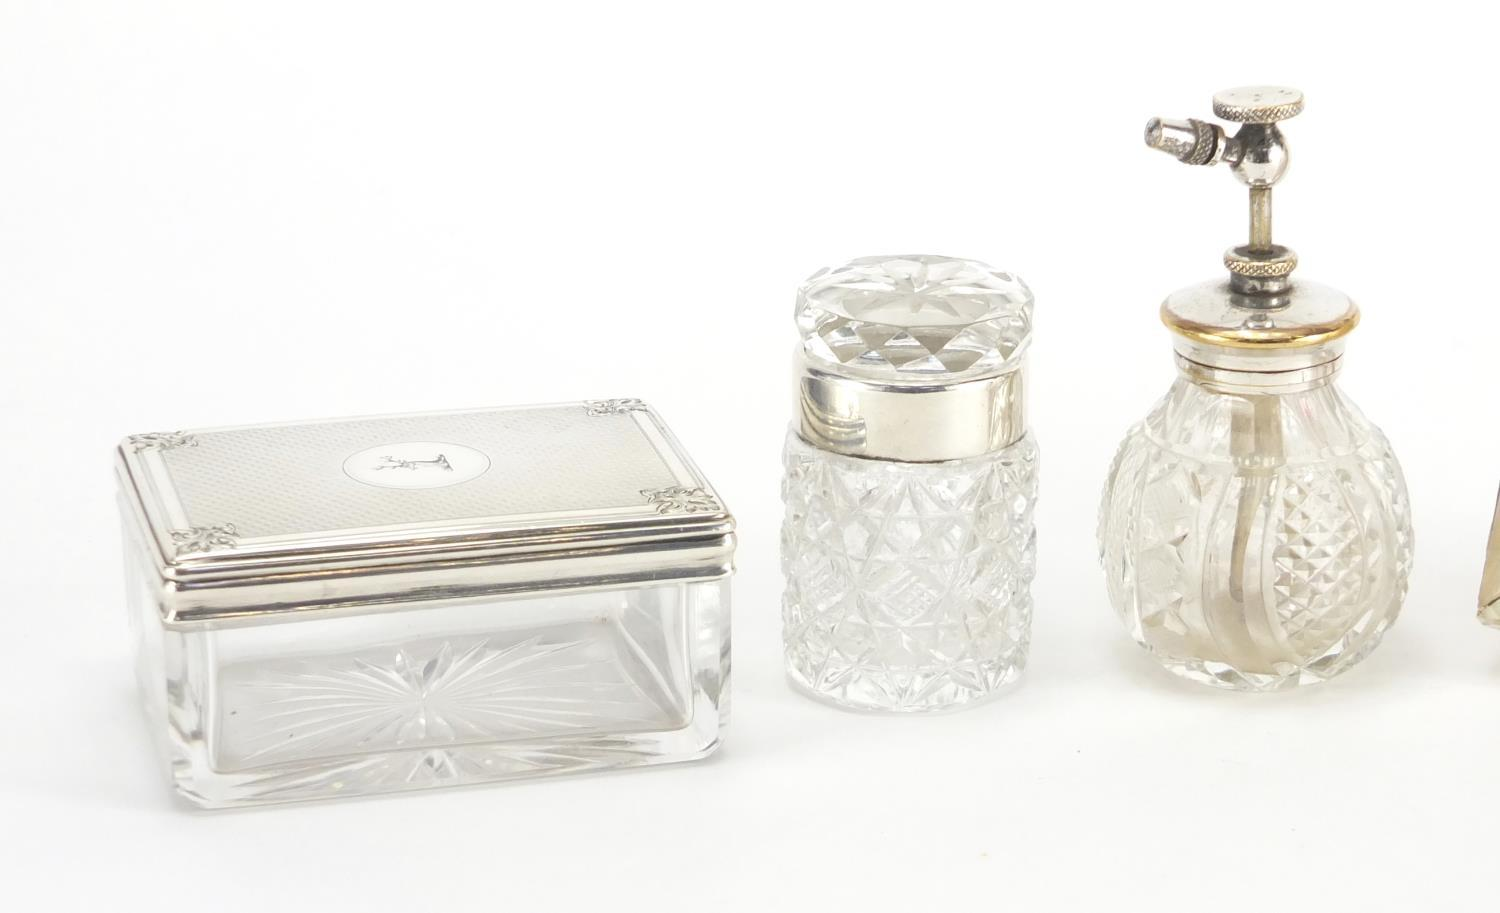 Lot 11 - Victorian and later objects including two glass pots with silver lids retailed by Briggs,